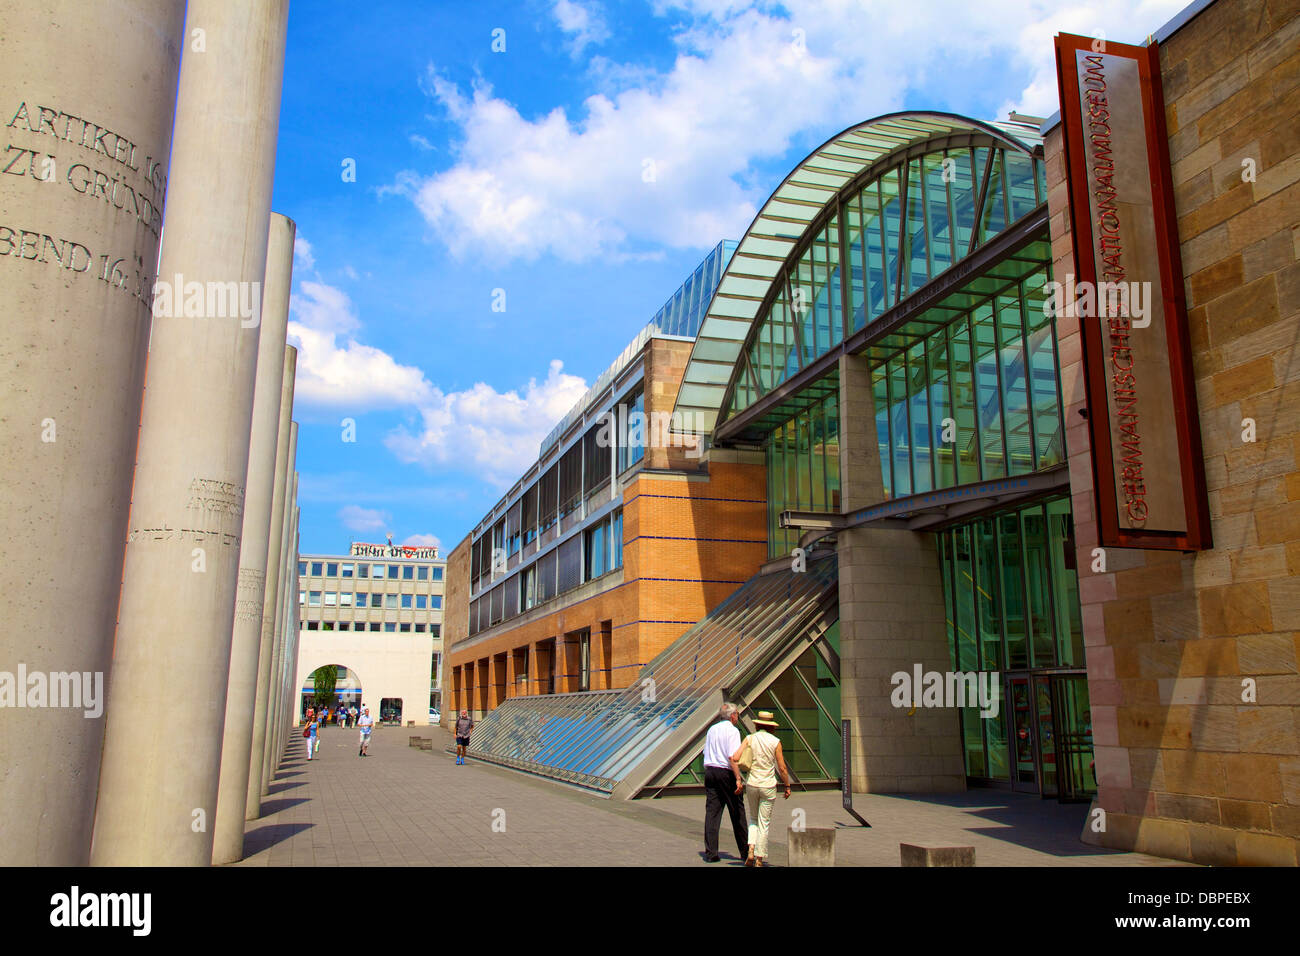 Germanisches National Museum and Way of Human Rights, Nuremberg, Bavaria, Germany, Europe - Stock Image